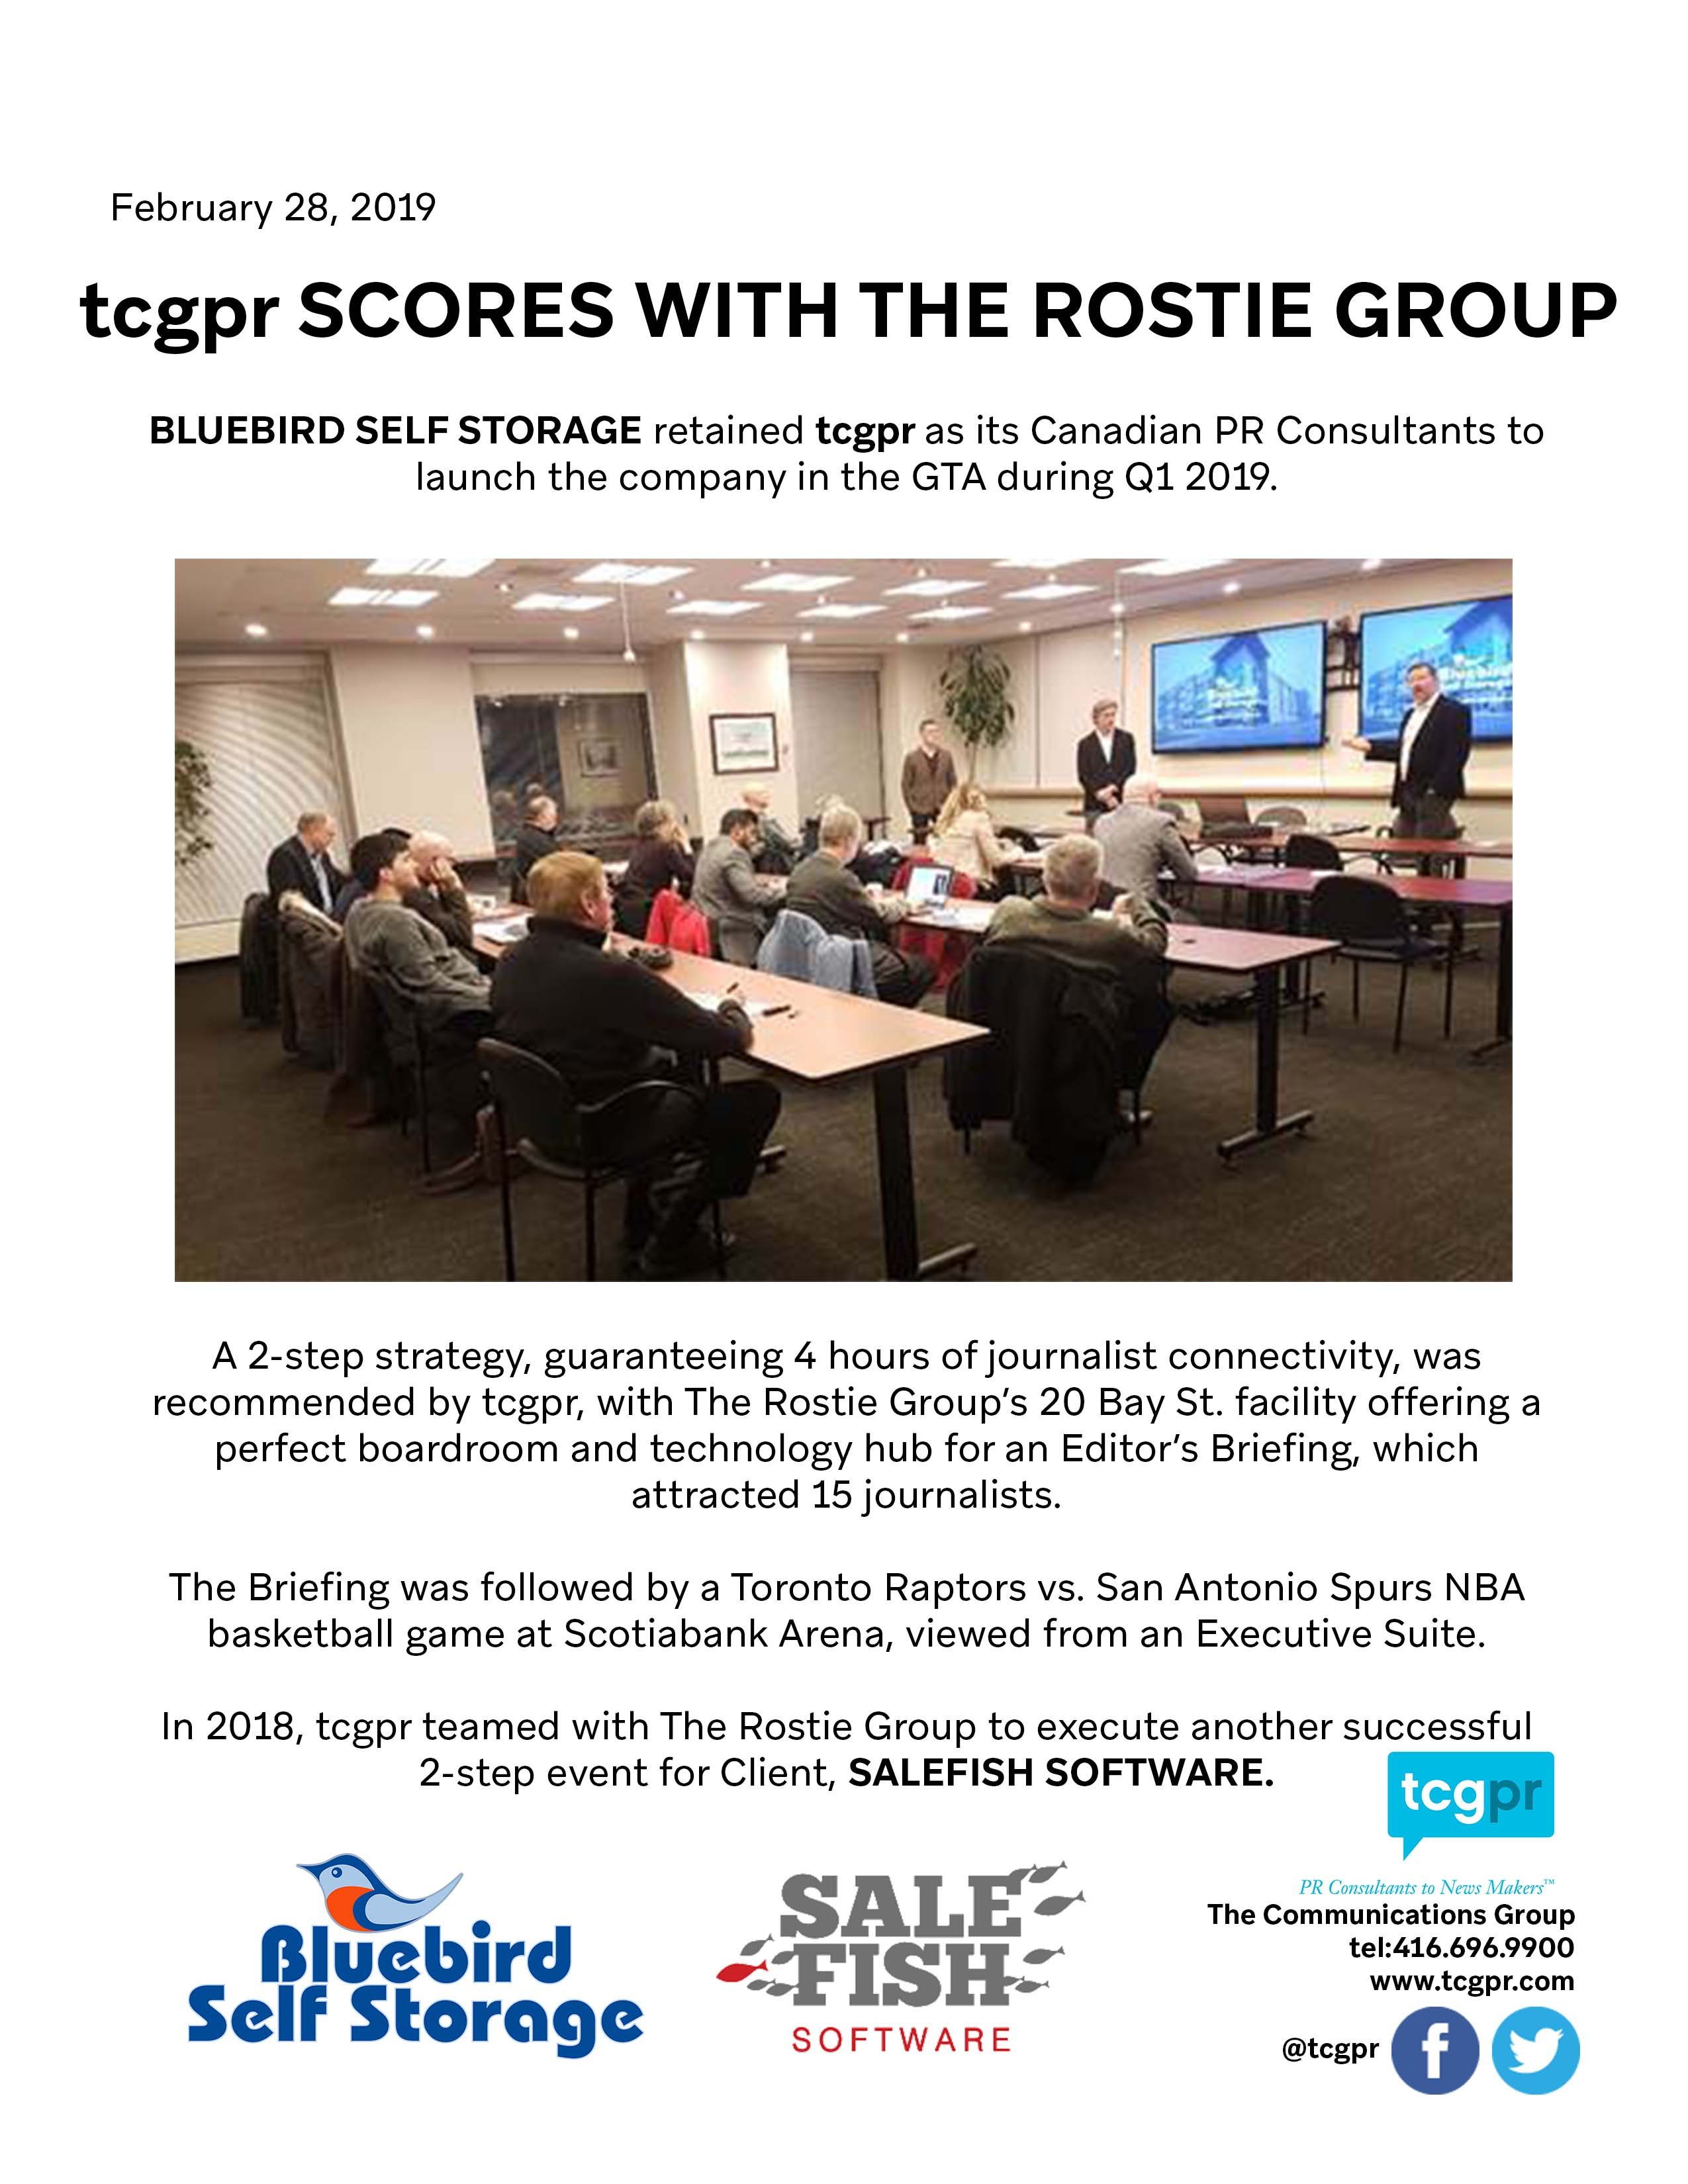 tcgpr scored with The Rostie Group